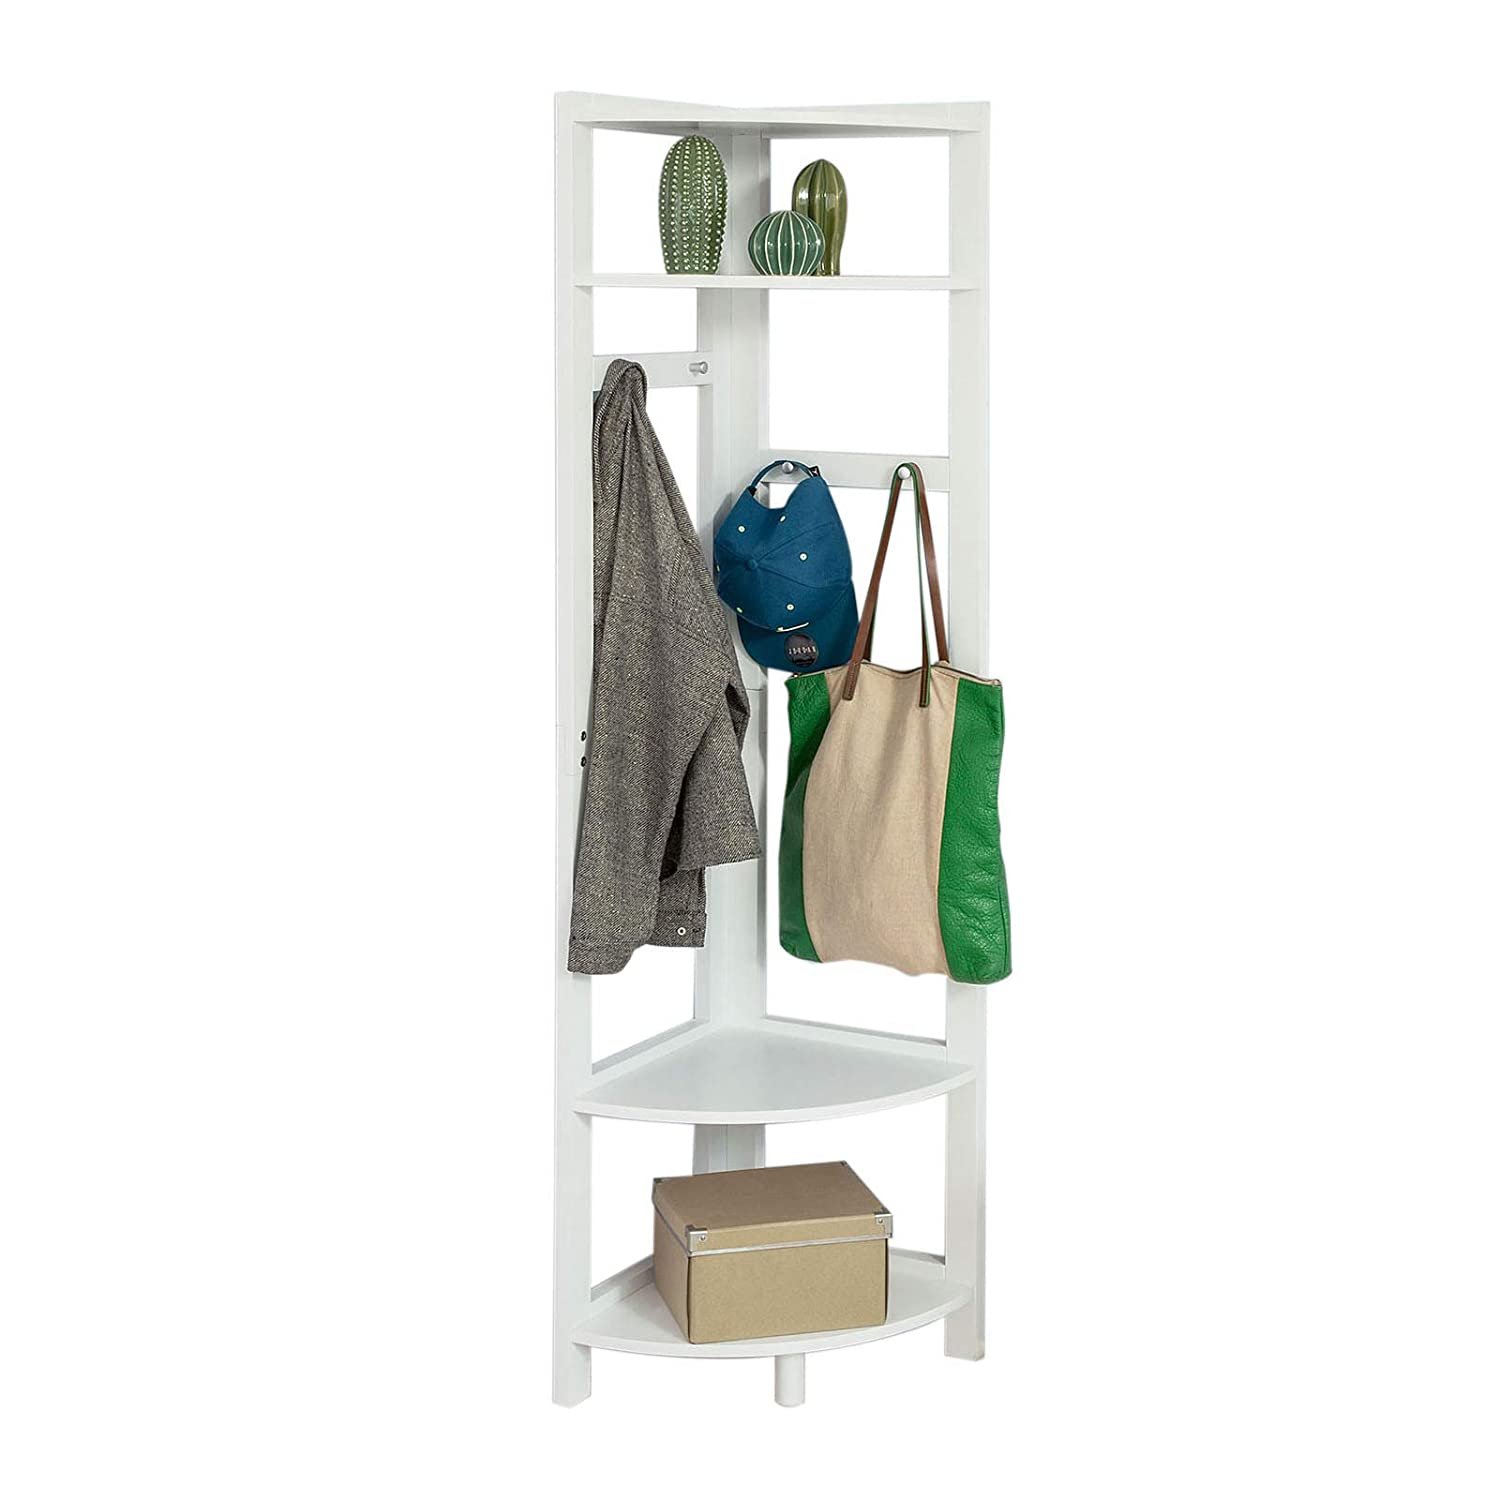 SoBuy Promotion -20% FRG250-W, 4 Tiers Corner Shelf Storage Display Shelving Unit, Hallway Corner Coat Rack, 40x40x170cm, White